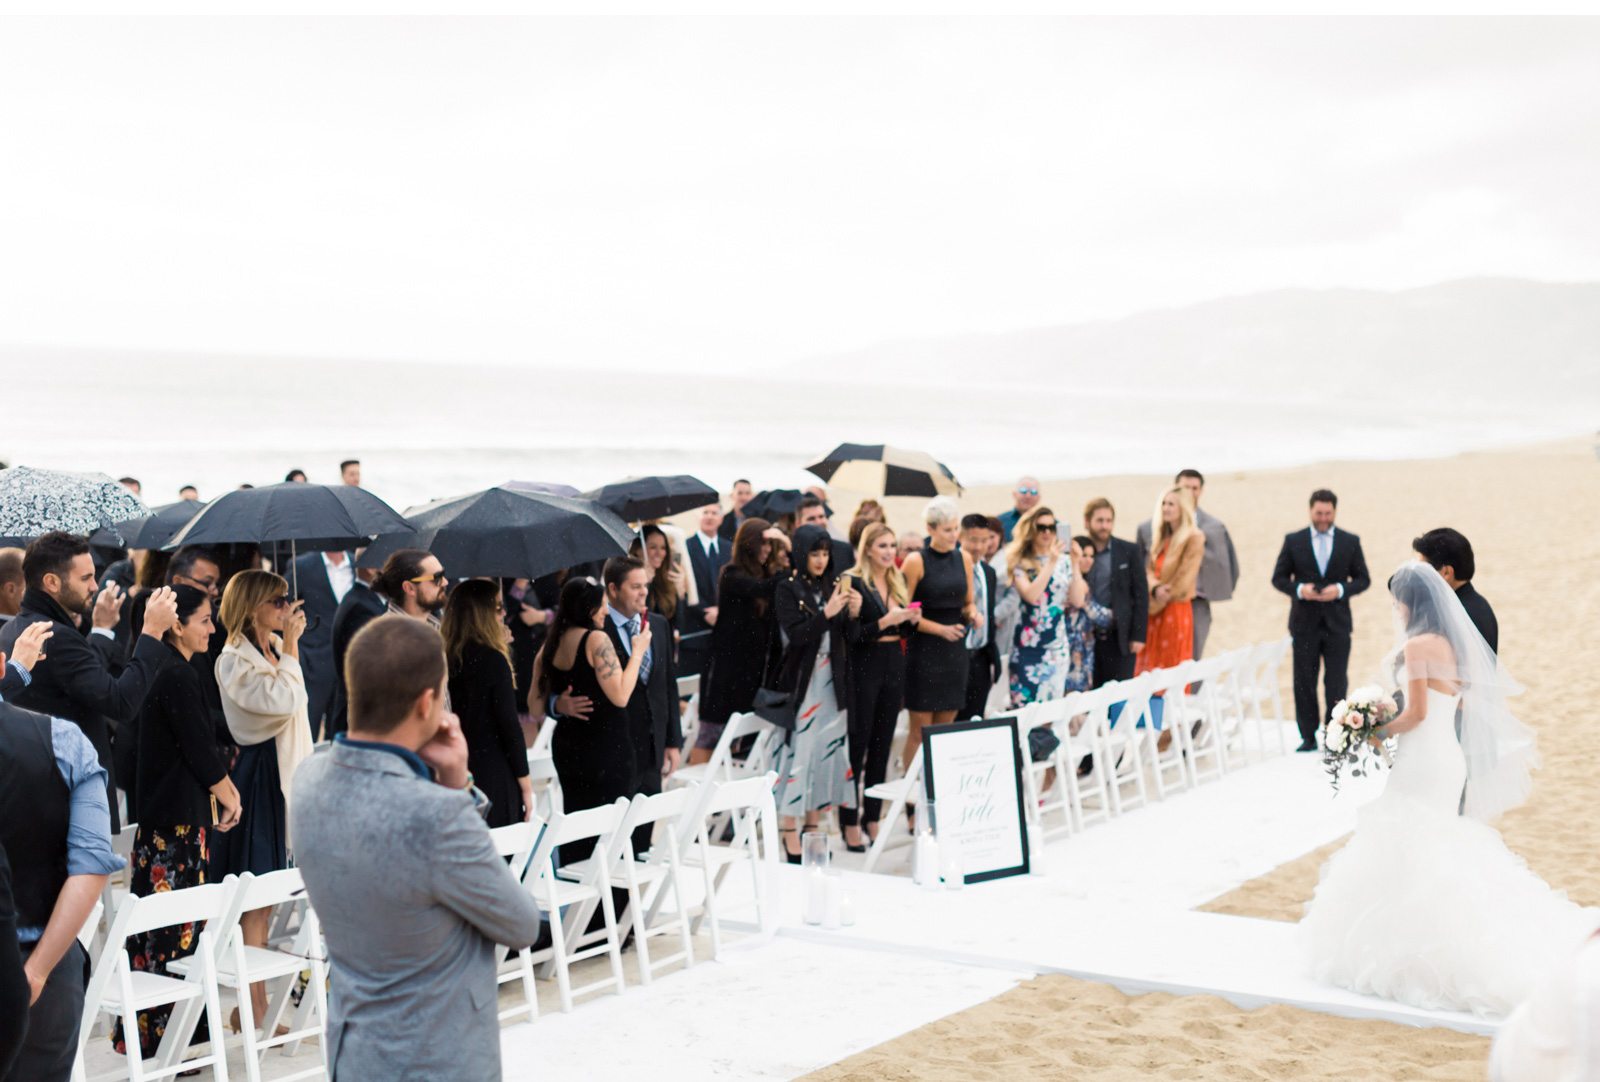 Malibu-Wedding-Natalie-Schutt-Photography-Style-Me-Pretty_05.jpg